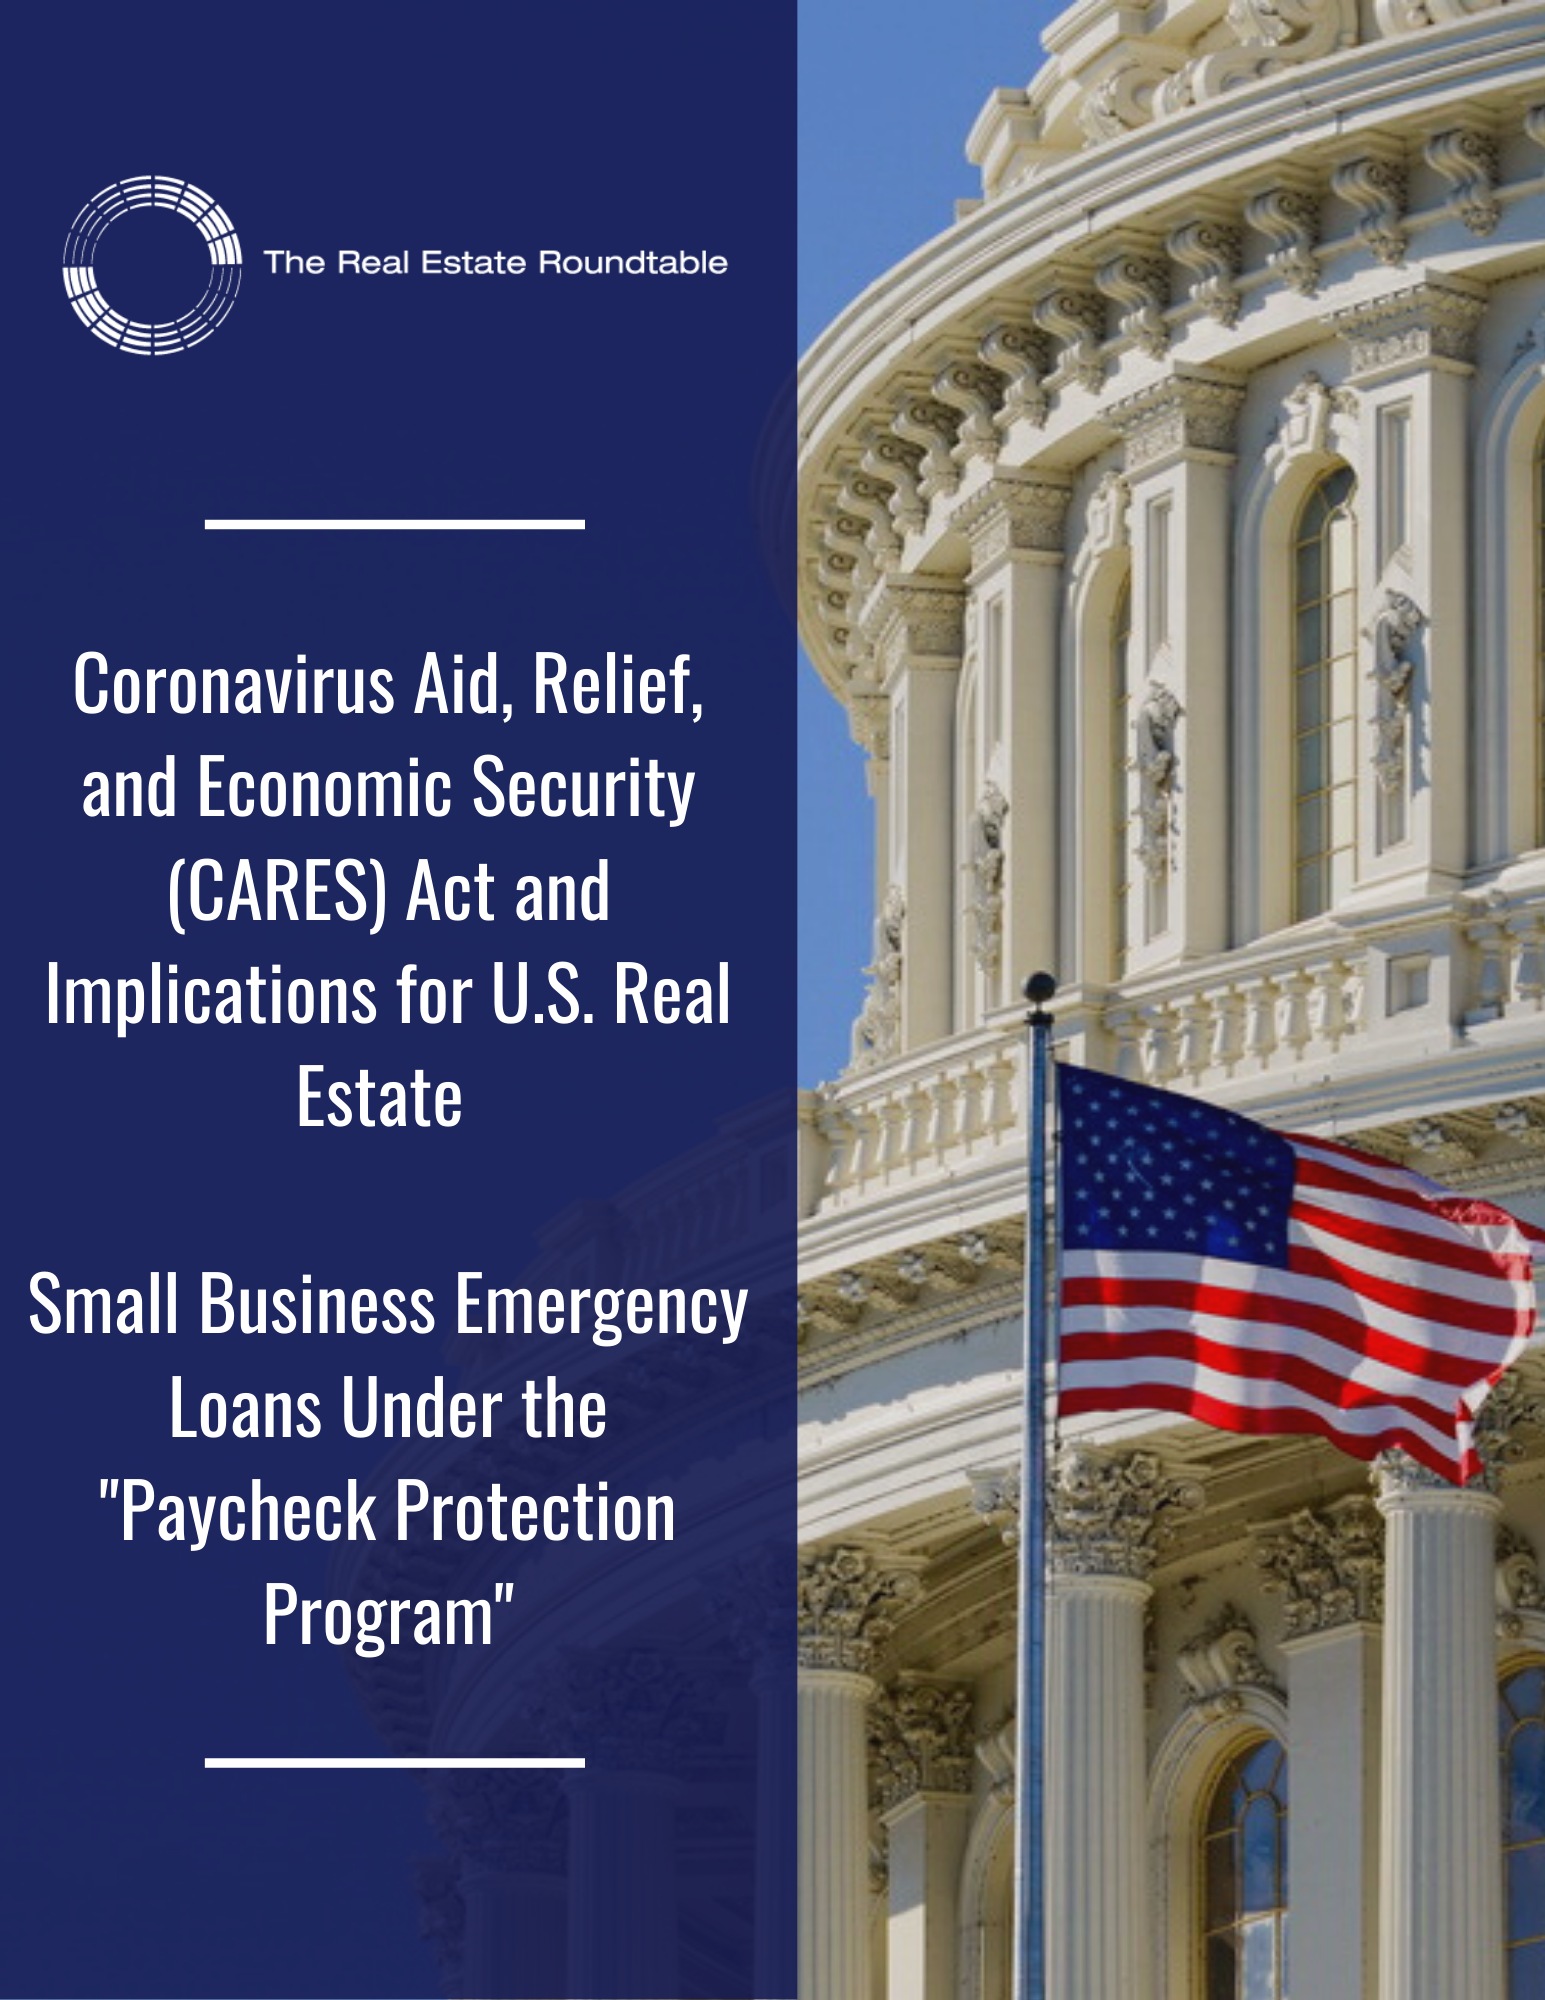 Small Business Emergency Loans Under the